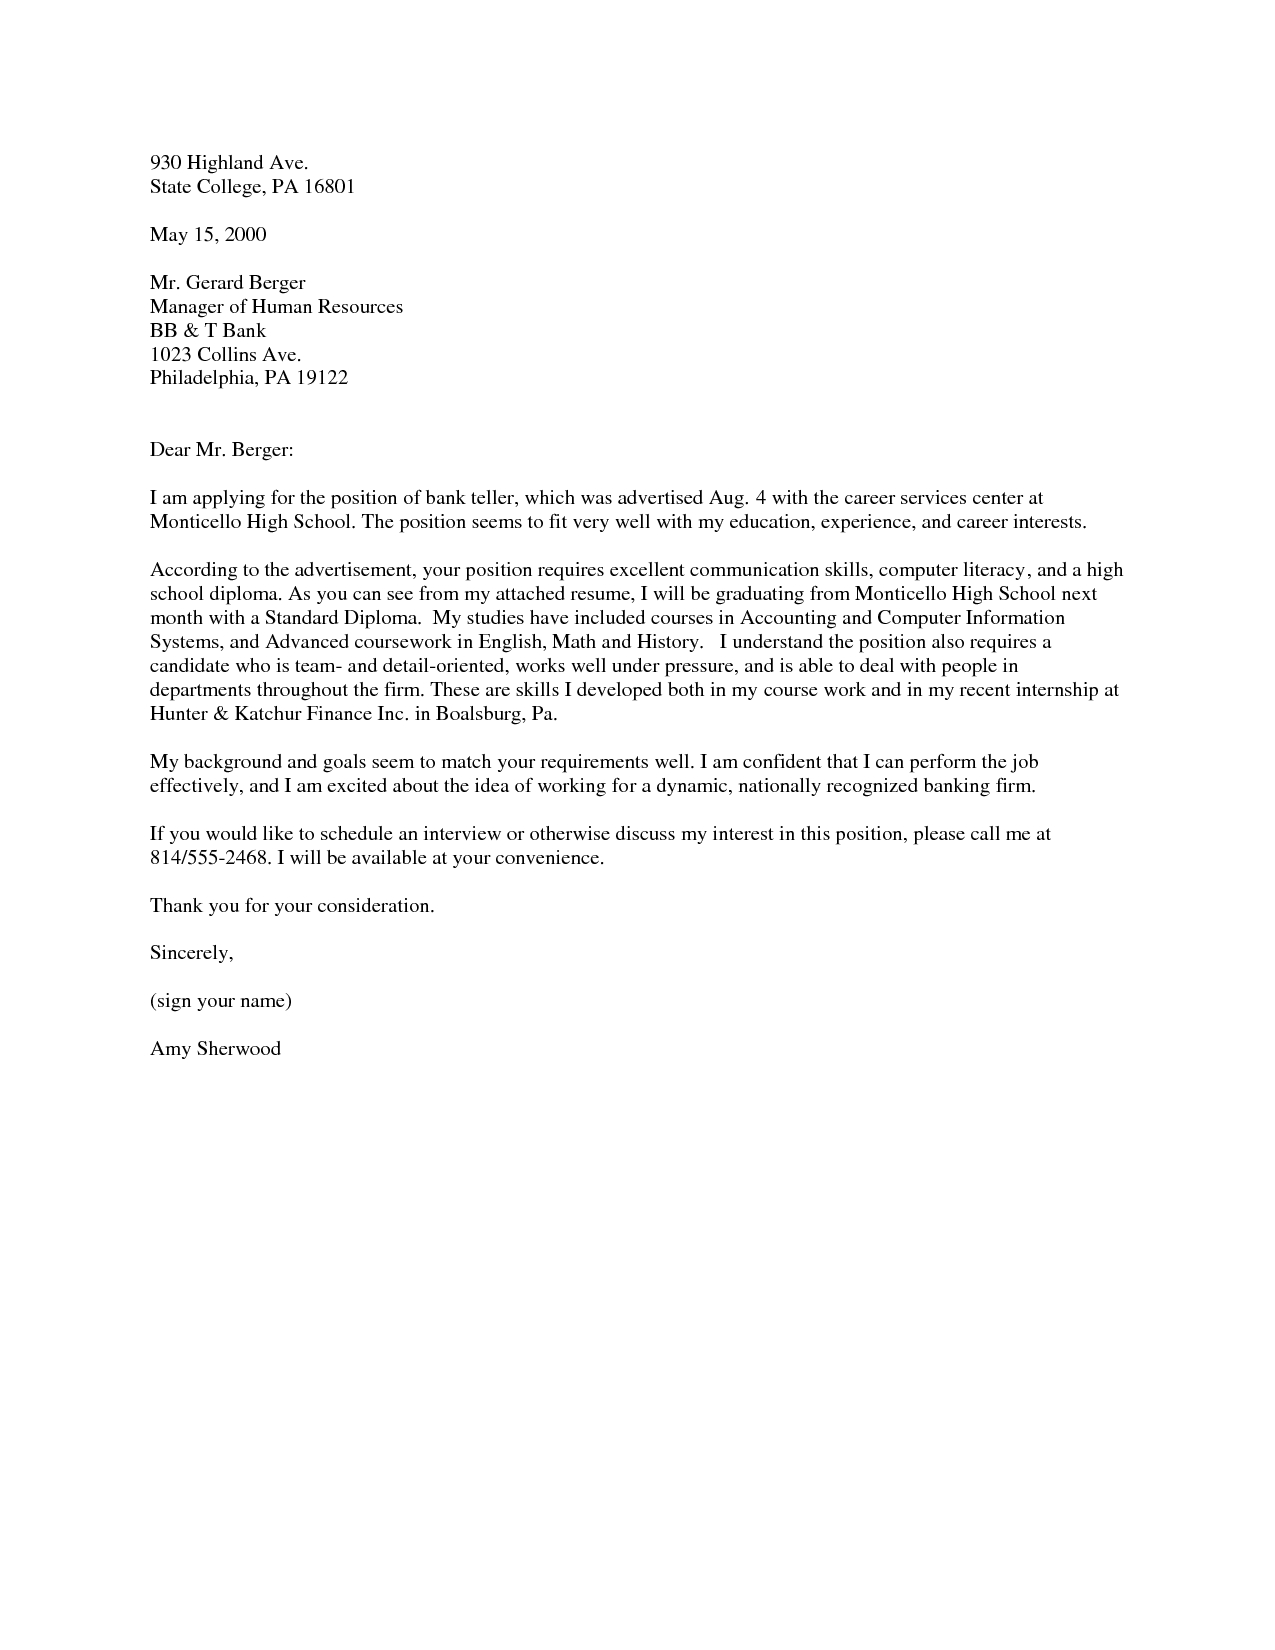 Cover Letter Template For Banking Position – Google Search Regarding Banking Cover Letter Template